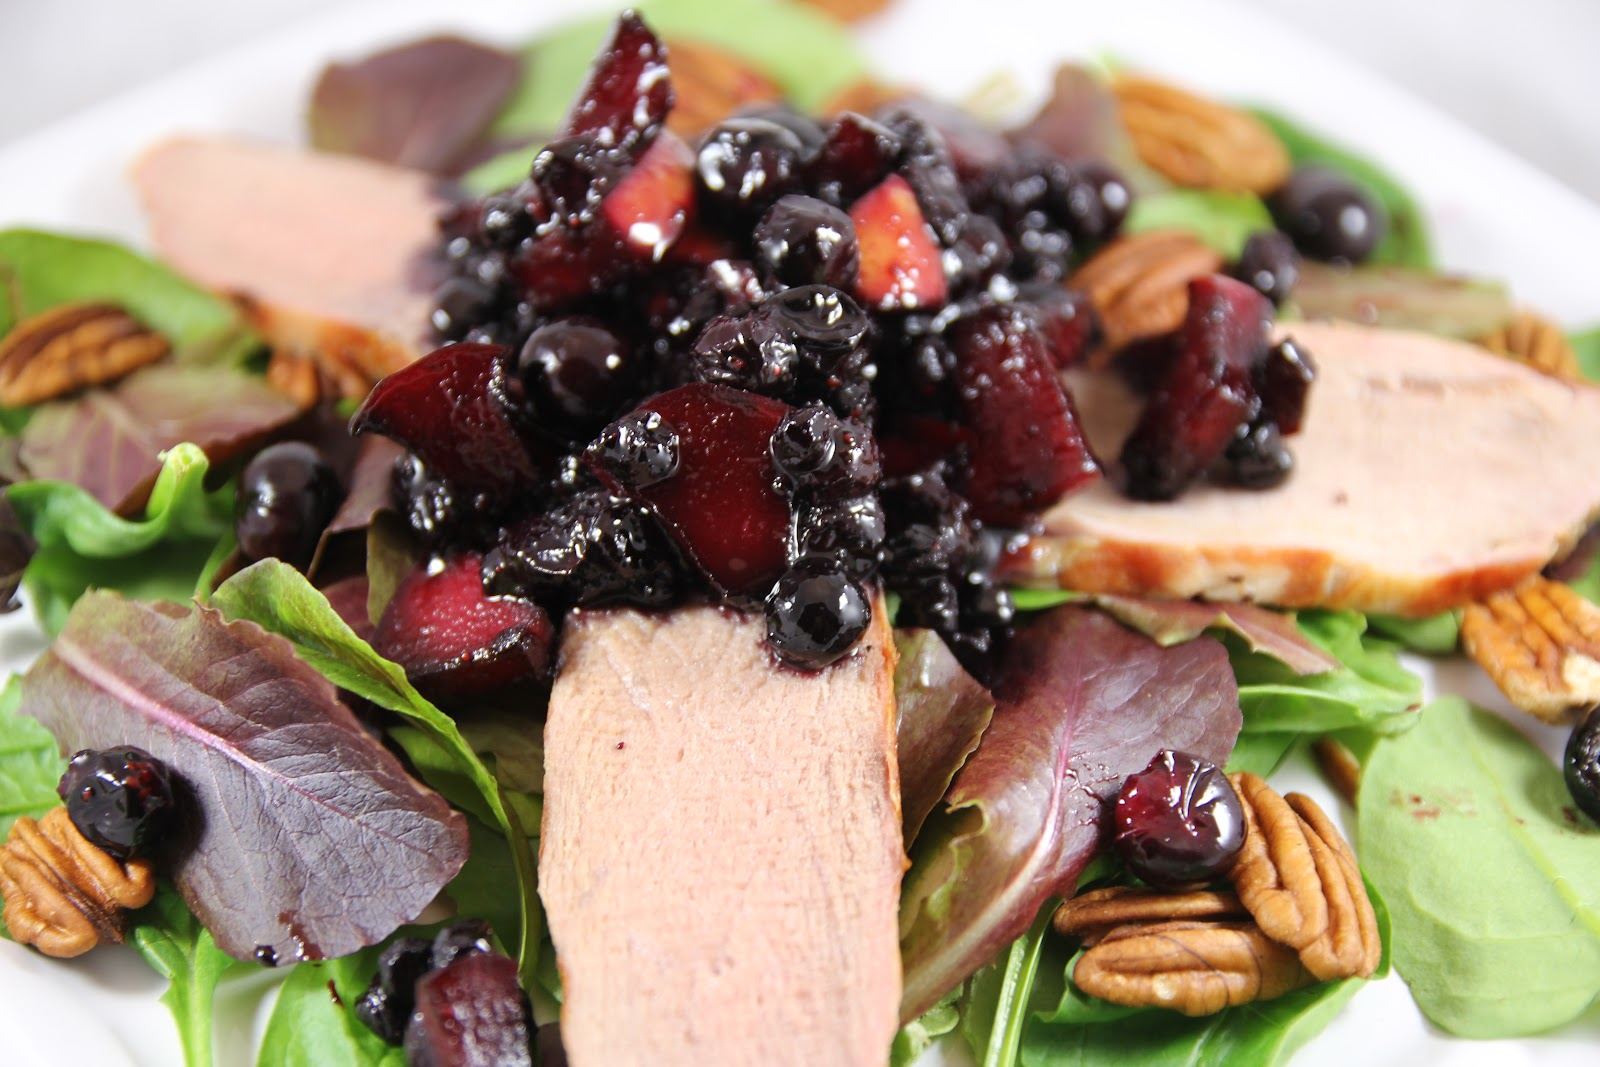 Crostini and Chianti: Pork Tenderloin with Apple-Blueberry Chutney